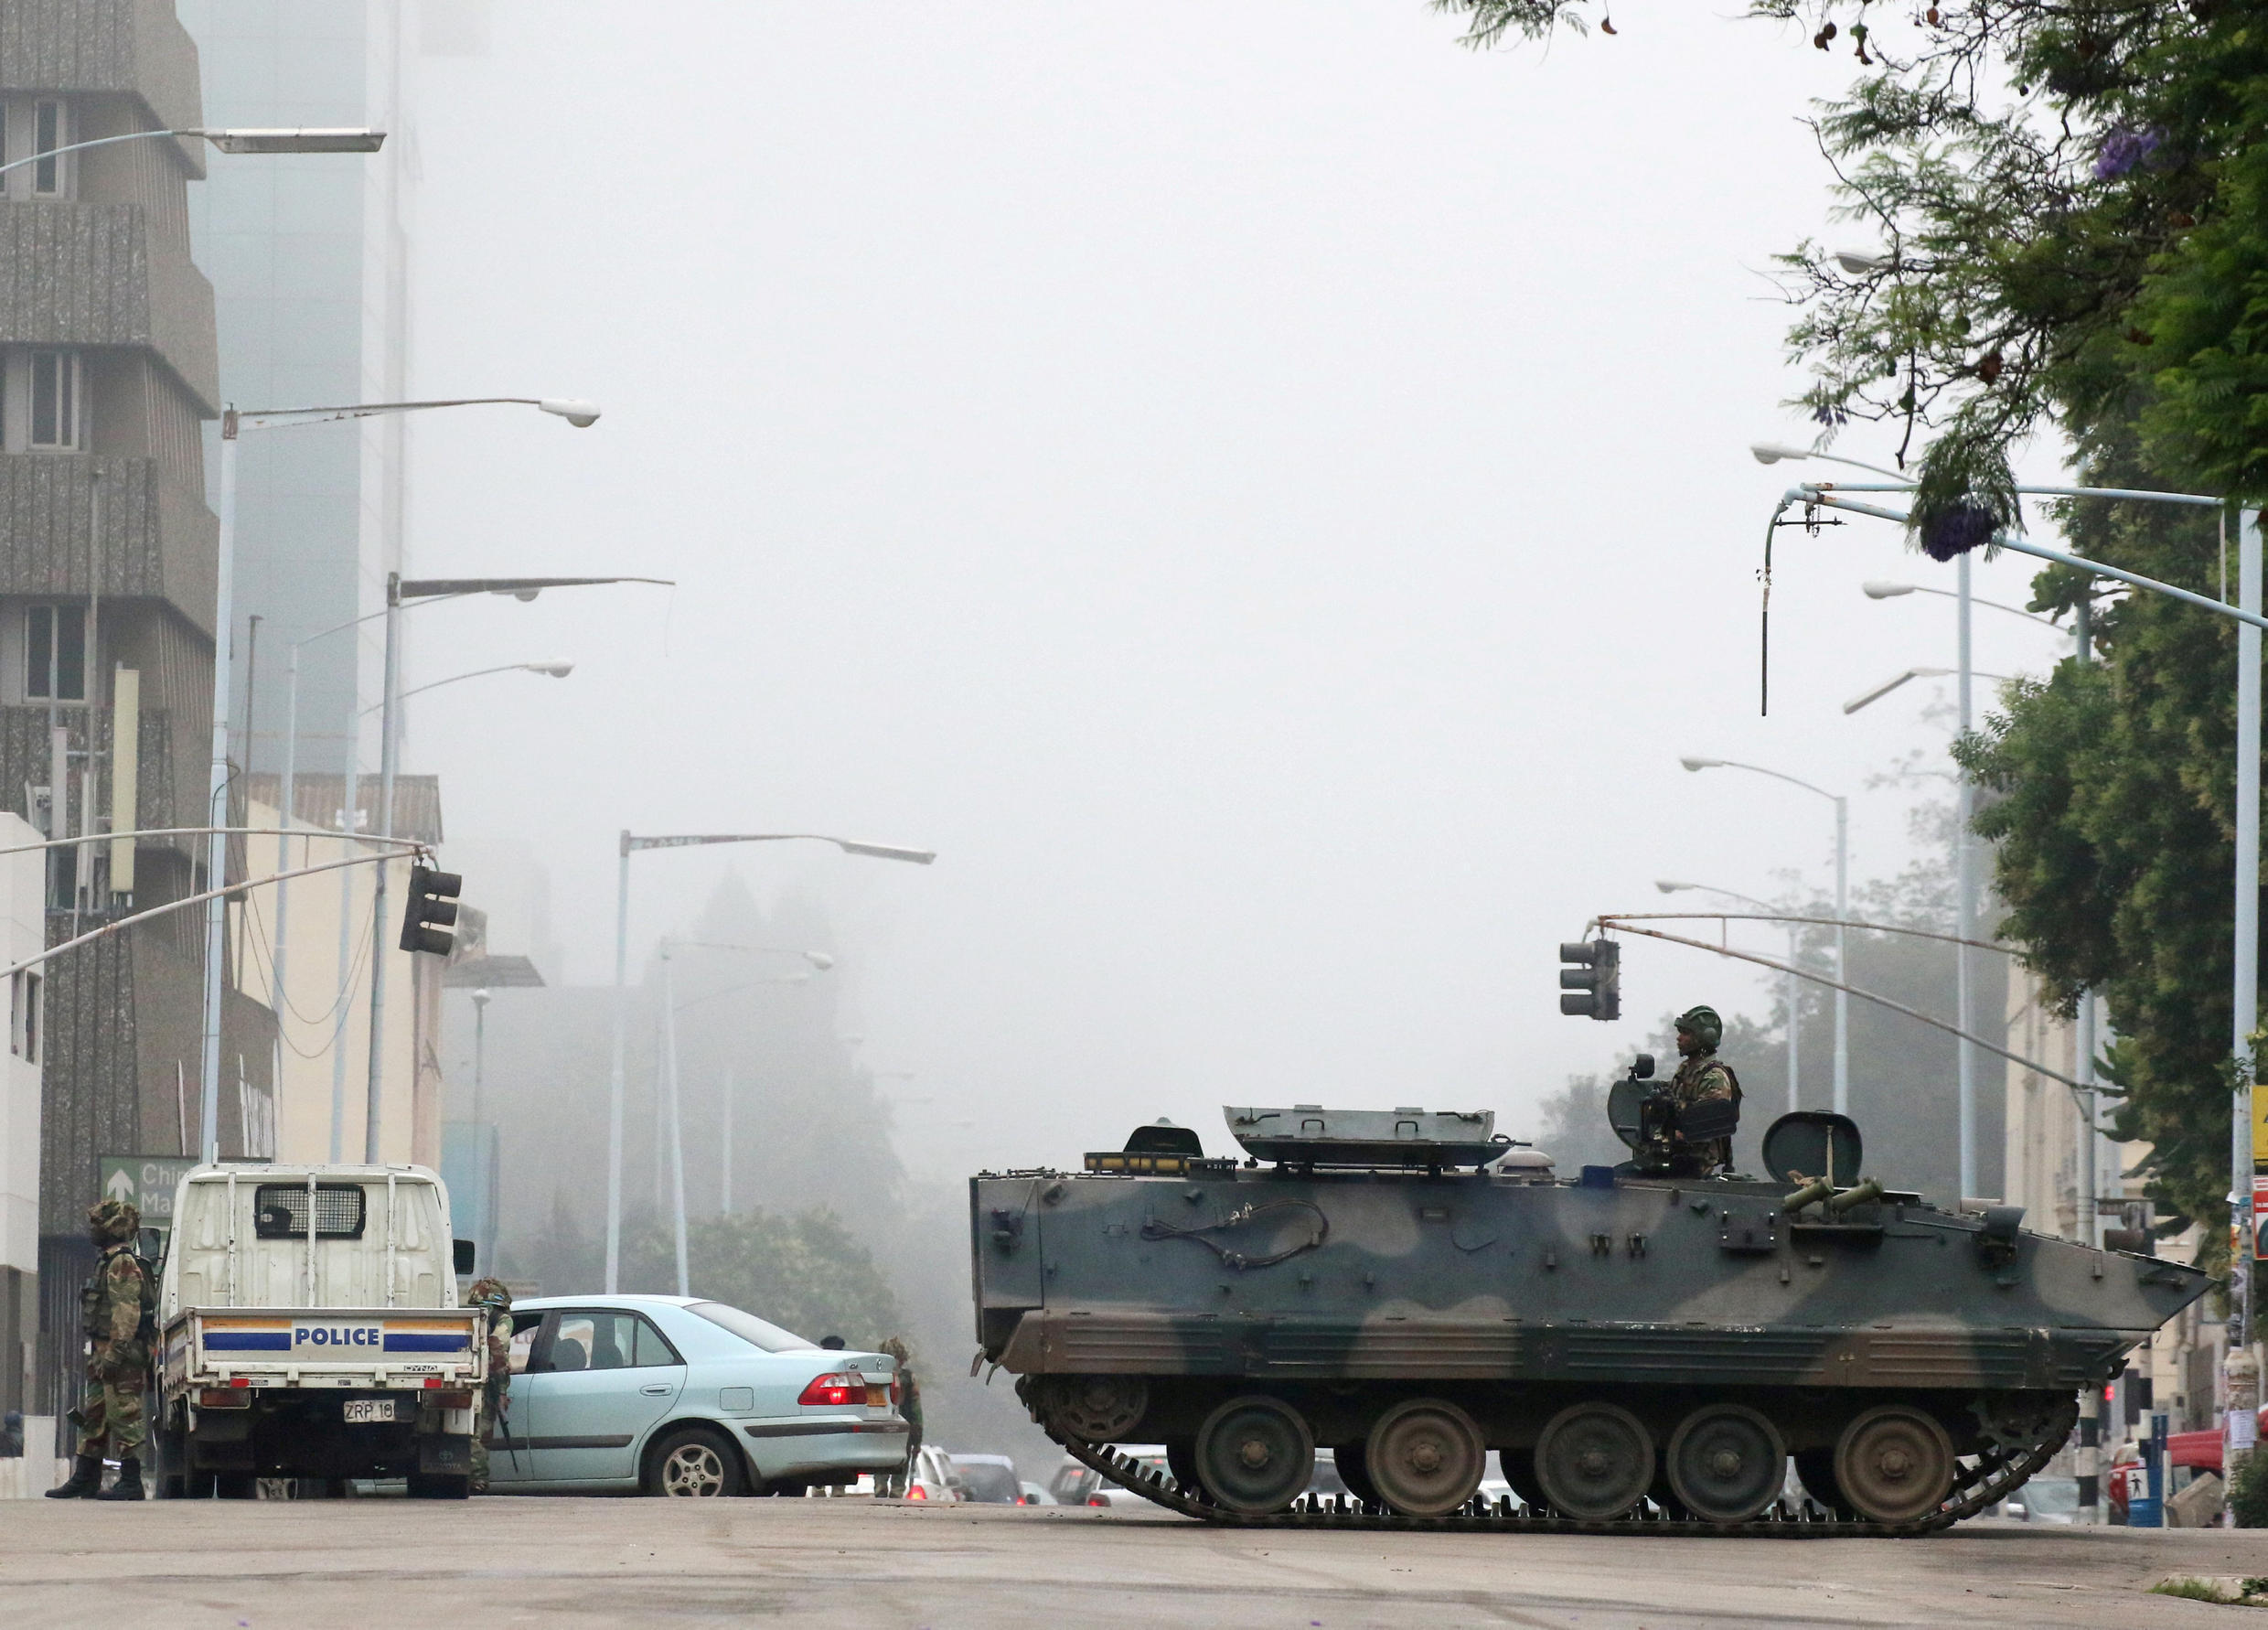 Military vehicles and soldiers patrol the streets in Harare, Zimbabwe, November 15,2017.